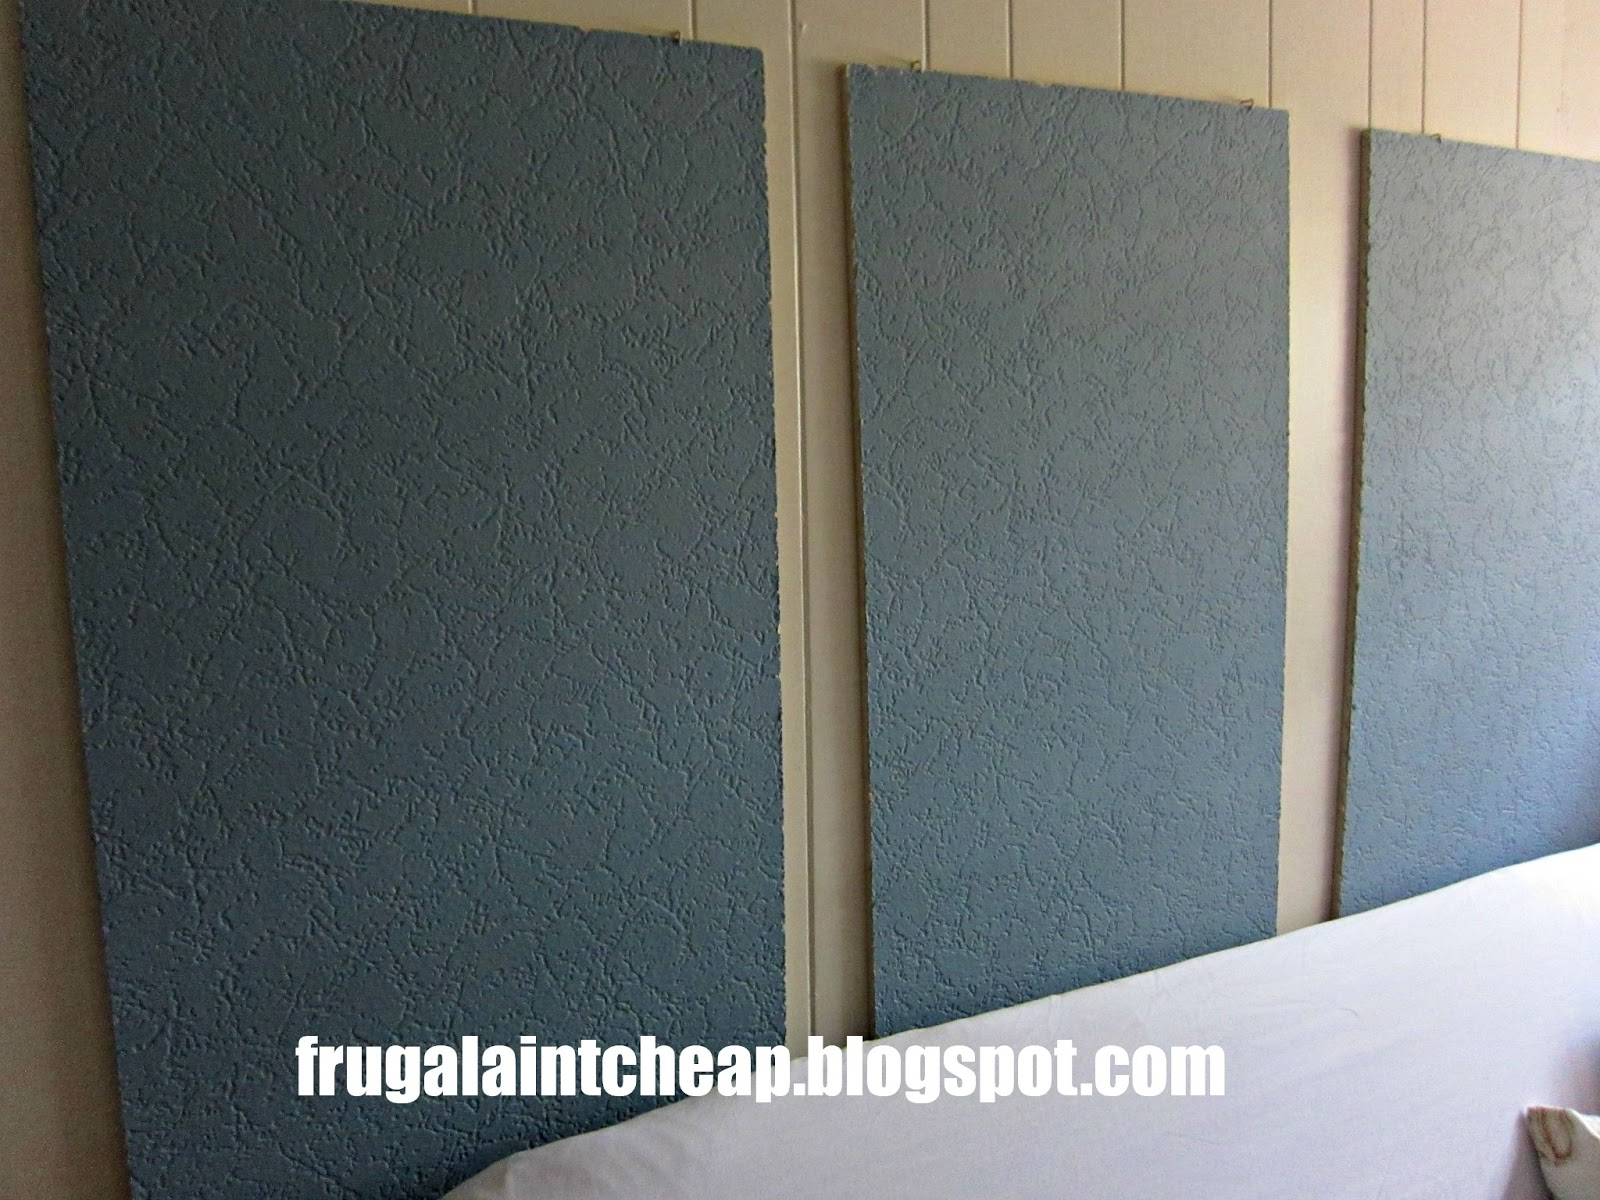 Wall Soundproofing Material : Frugal ain t cheap soundproofing a room